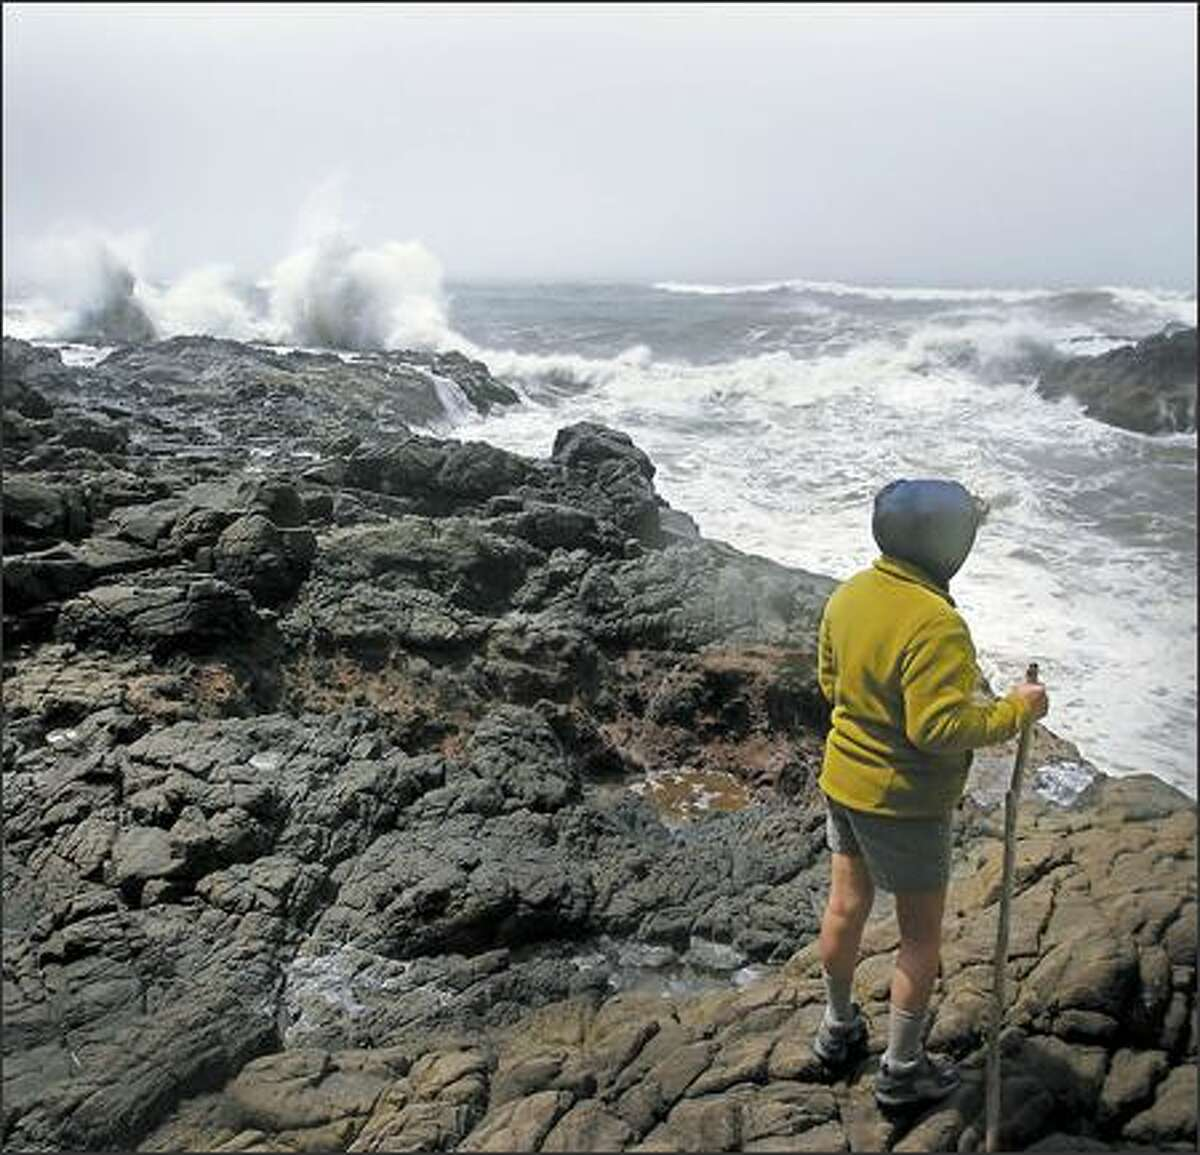 Laurie Jorgenson of Kirkland watches the water roil in Devil's Churn at Cape Perpetua on the Oregon coast.